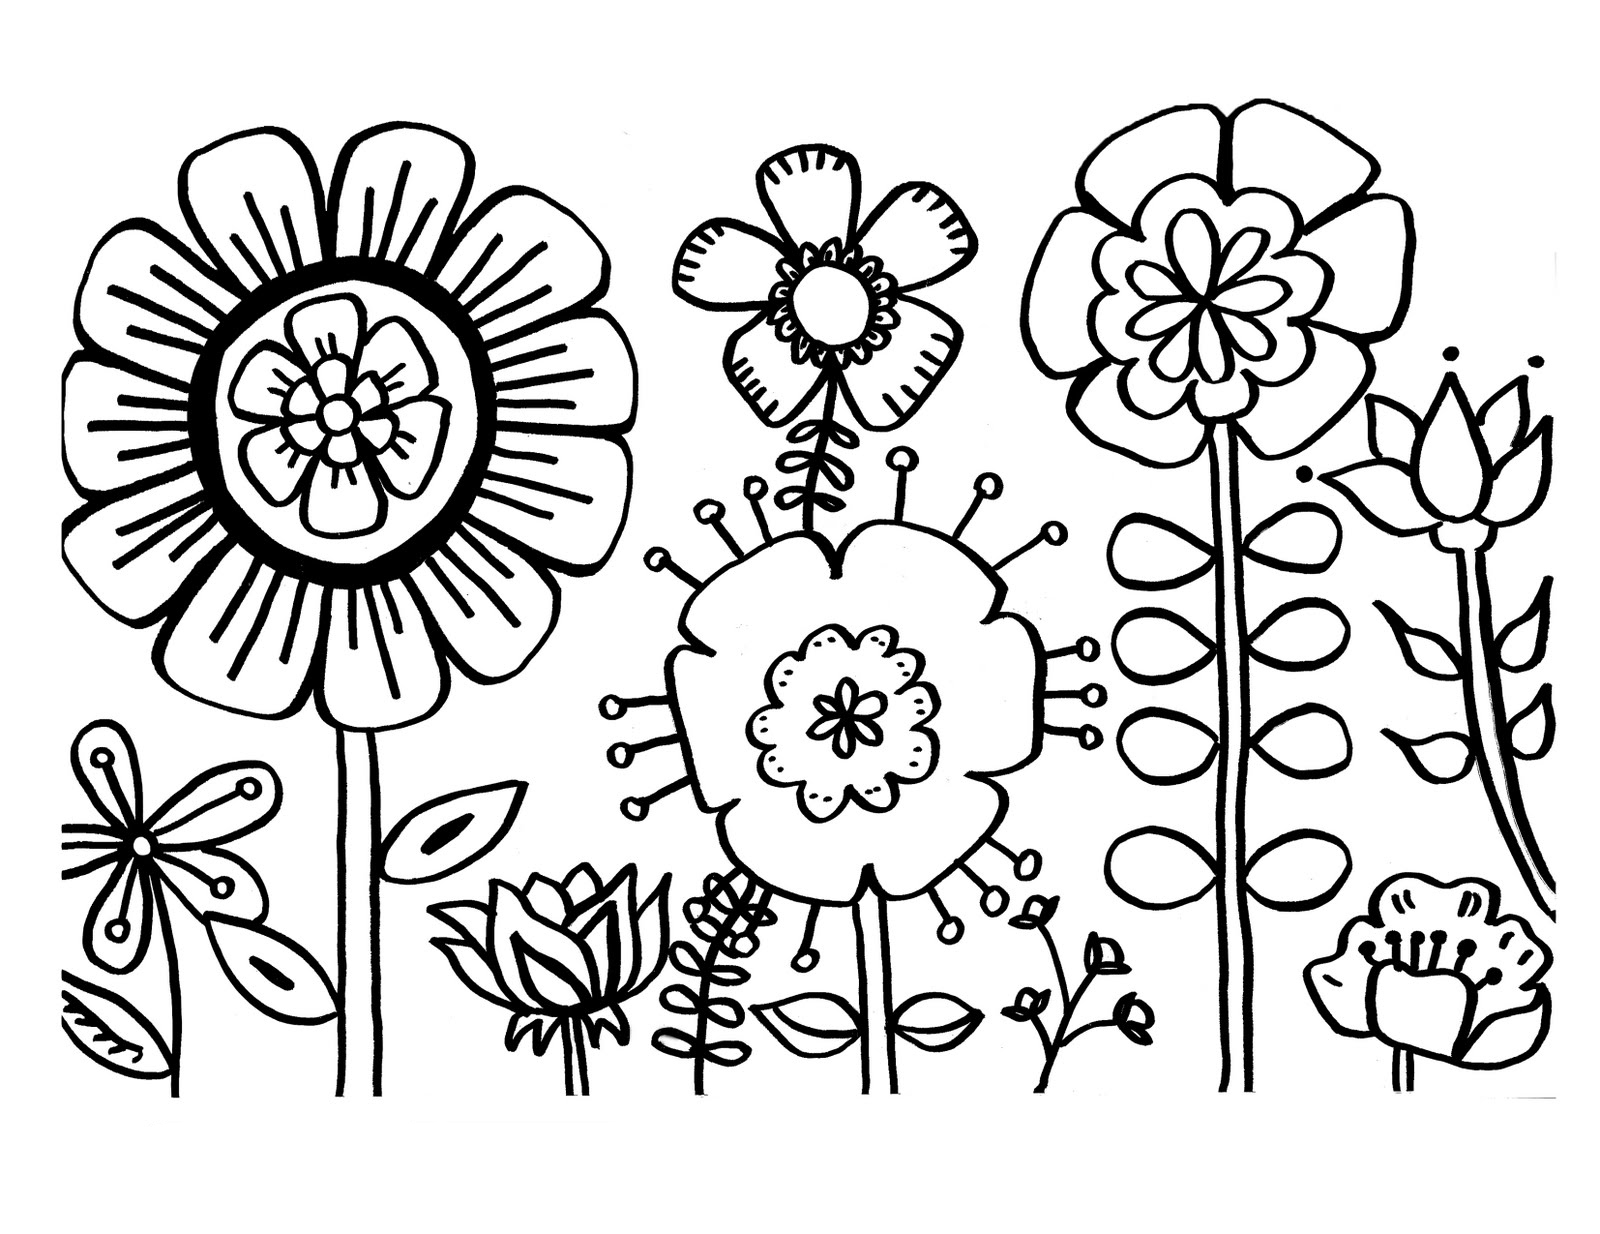 pictures of flowers to color spring flower coloring pages to download and print for free of flowers color to pictures